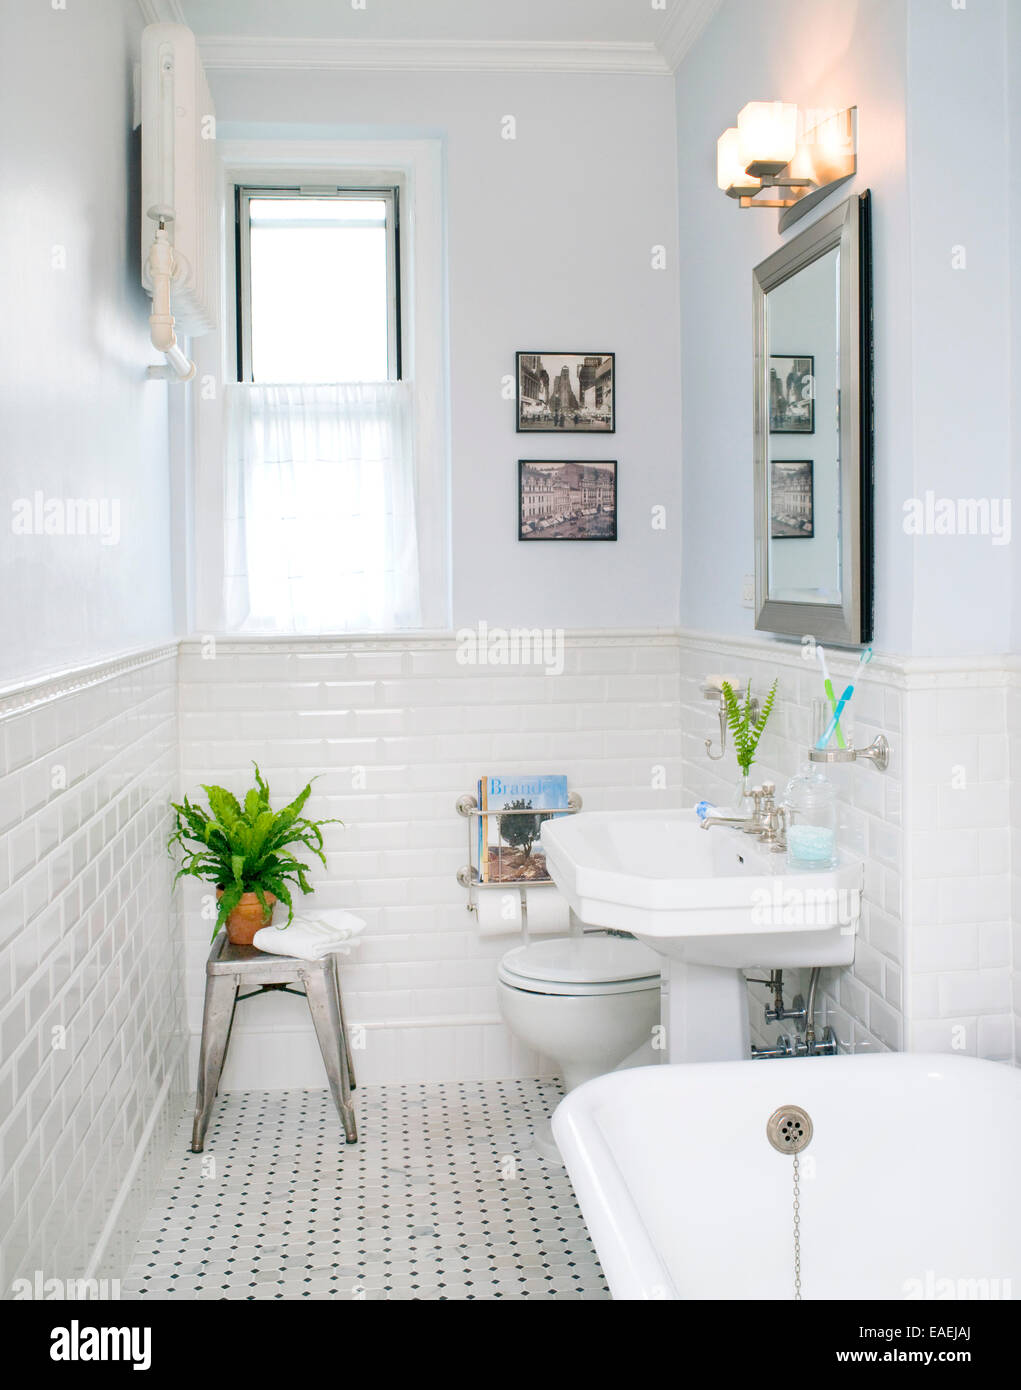 Sink immagini sink fotos stock alamy - Piastrelle bianche bagno ...